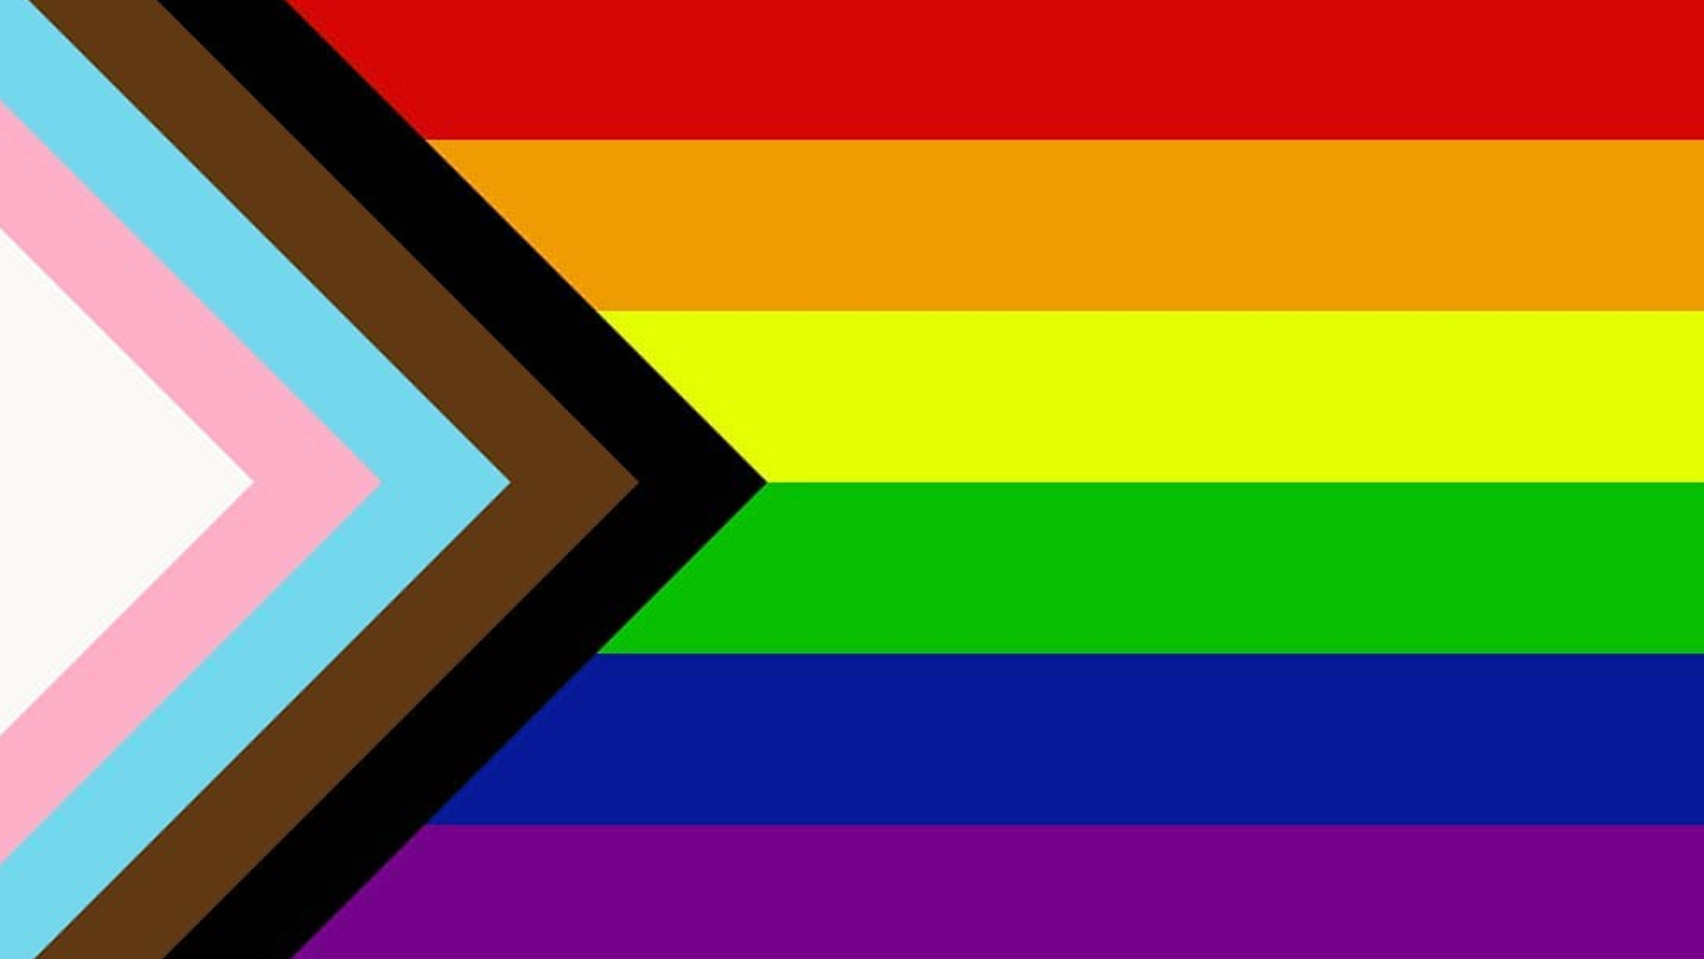 The Progress Pride flag on it and loops of elastic to go around ears. Progress Pride flag has chevrons in from left side: white, pink, blue, brown, black overlaid on horizontal stripes from top to bottom: red, orange, yellow, green, blue, purple